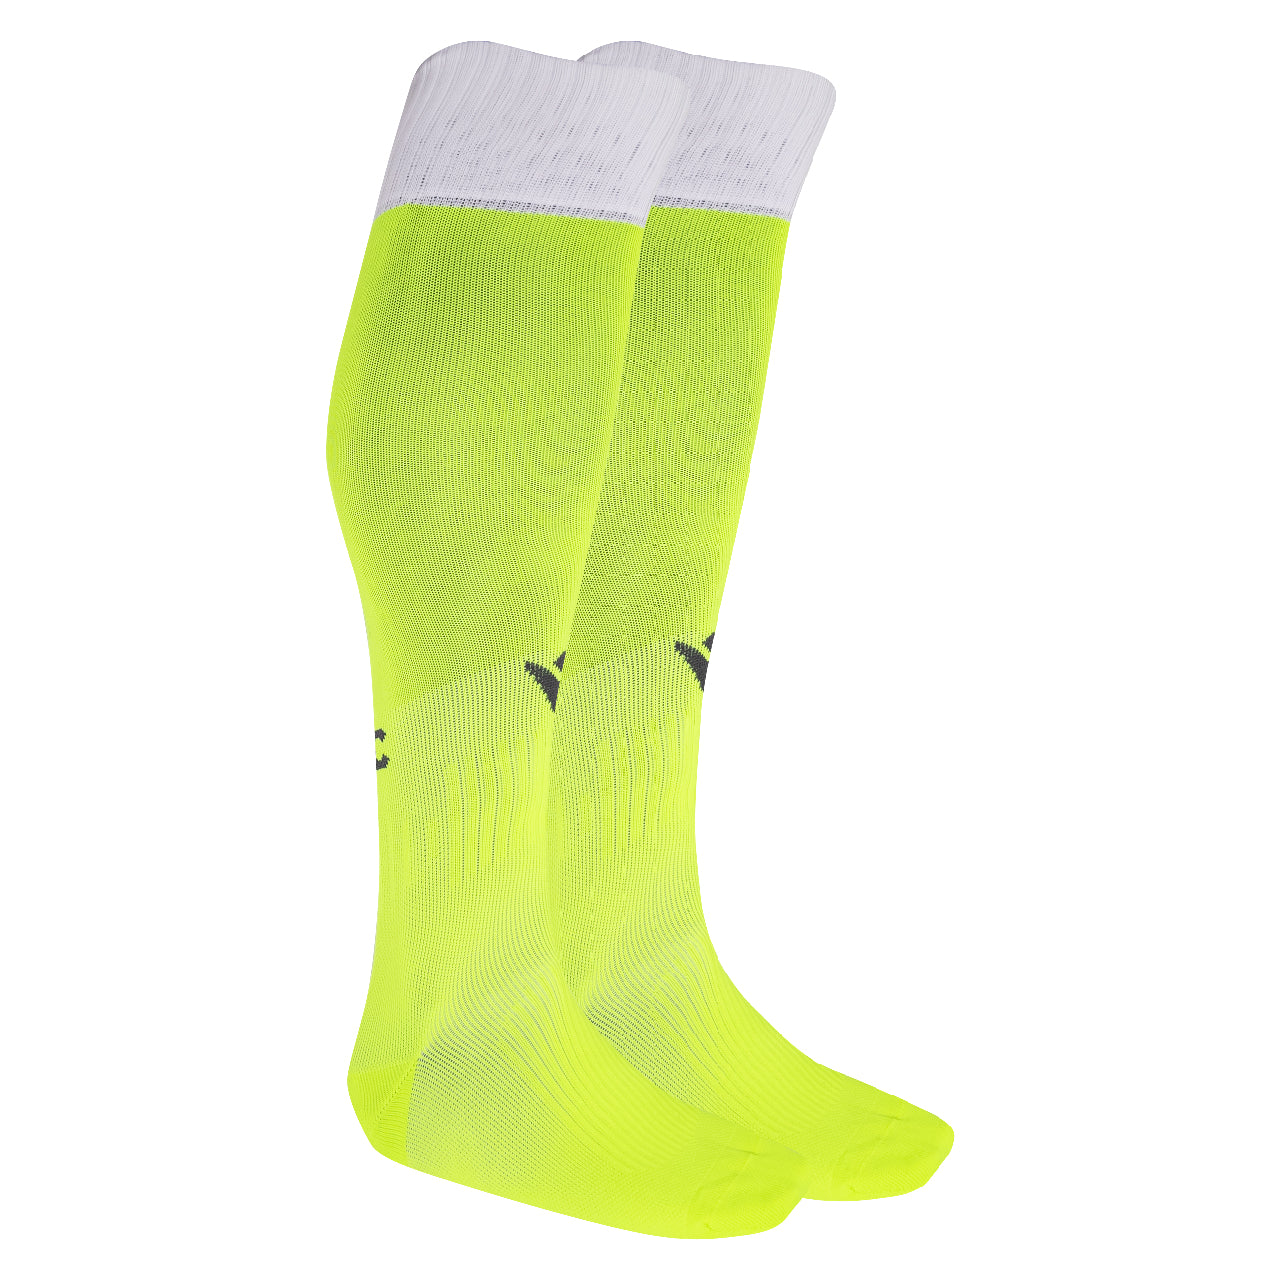 NFFC Mens Yellow Goalkeeper Socks 2019/20